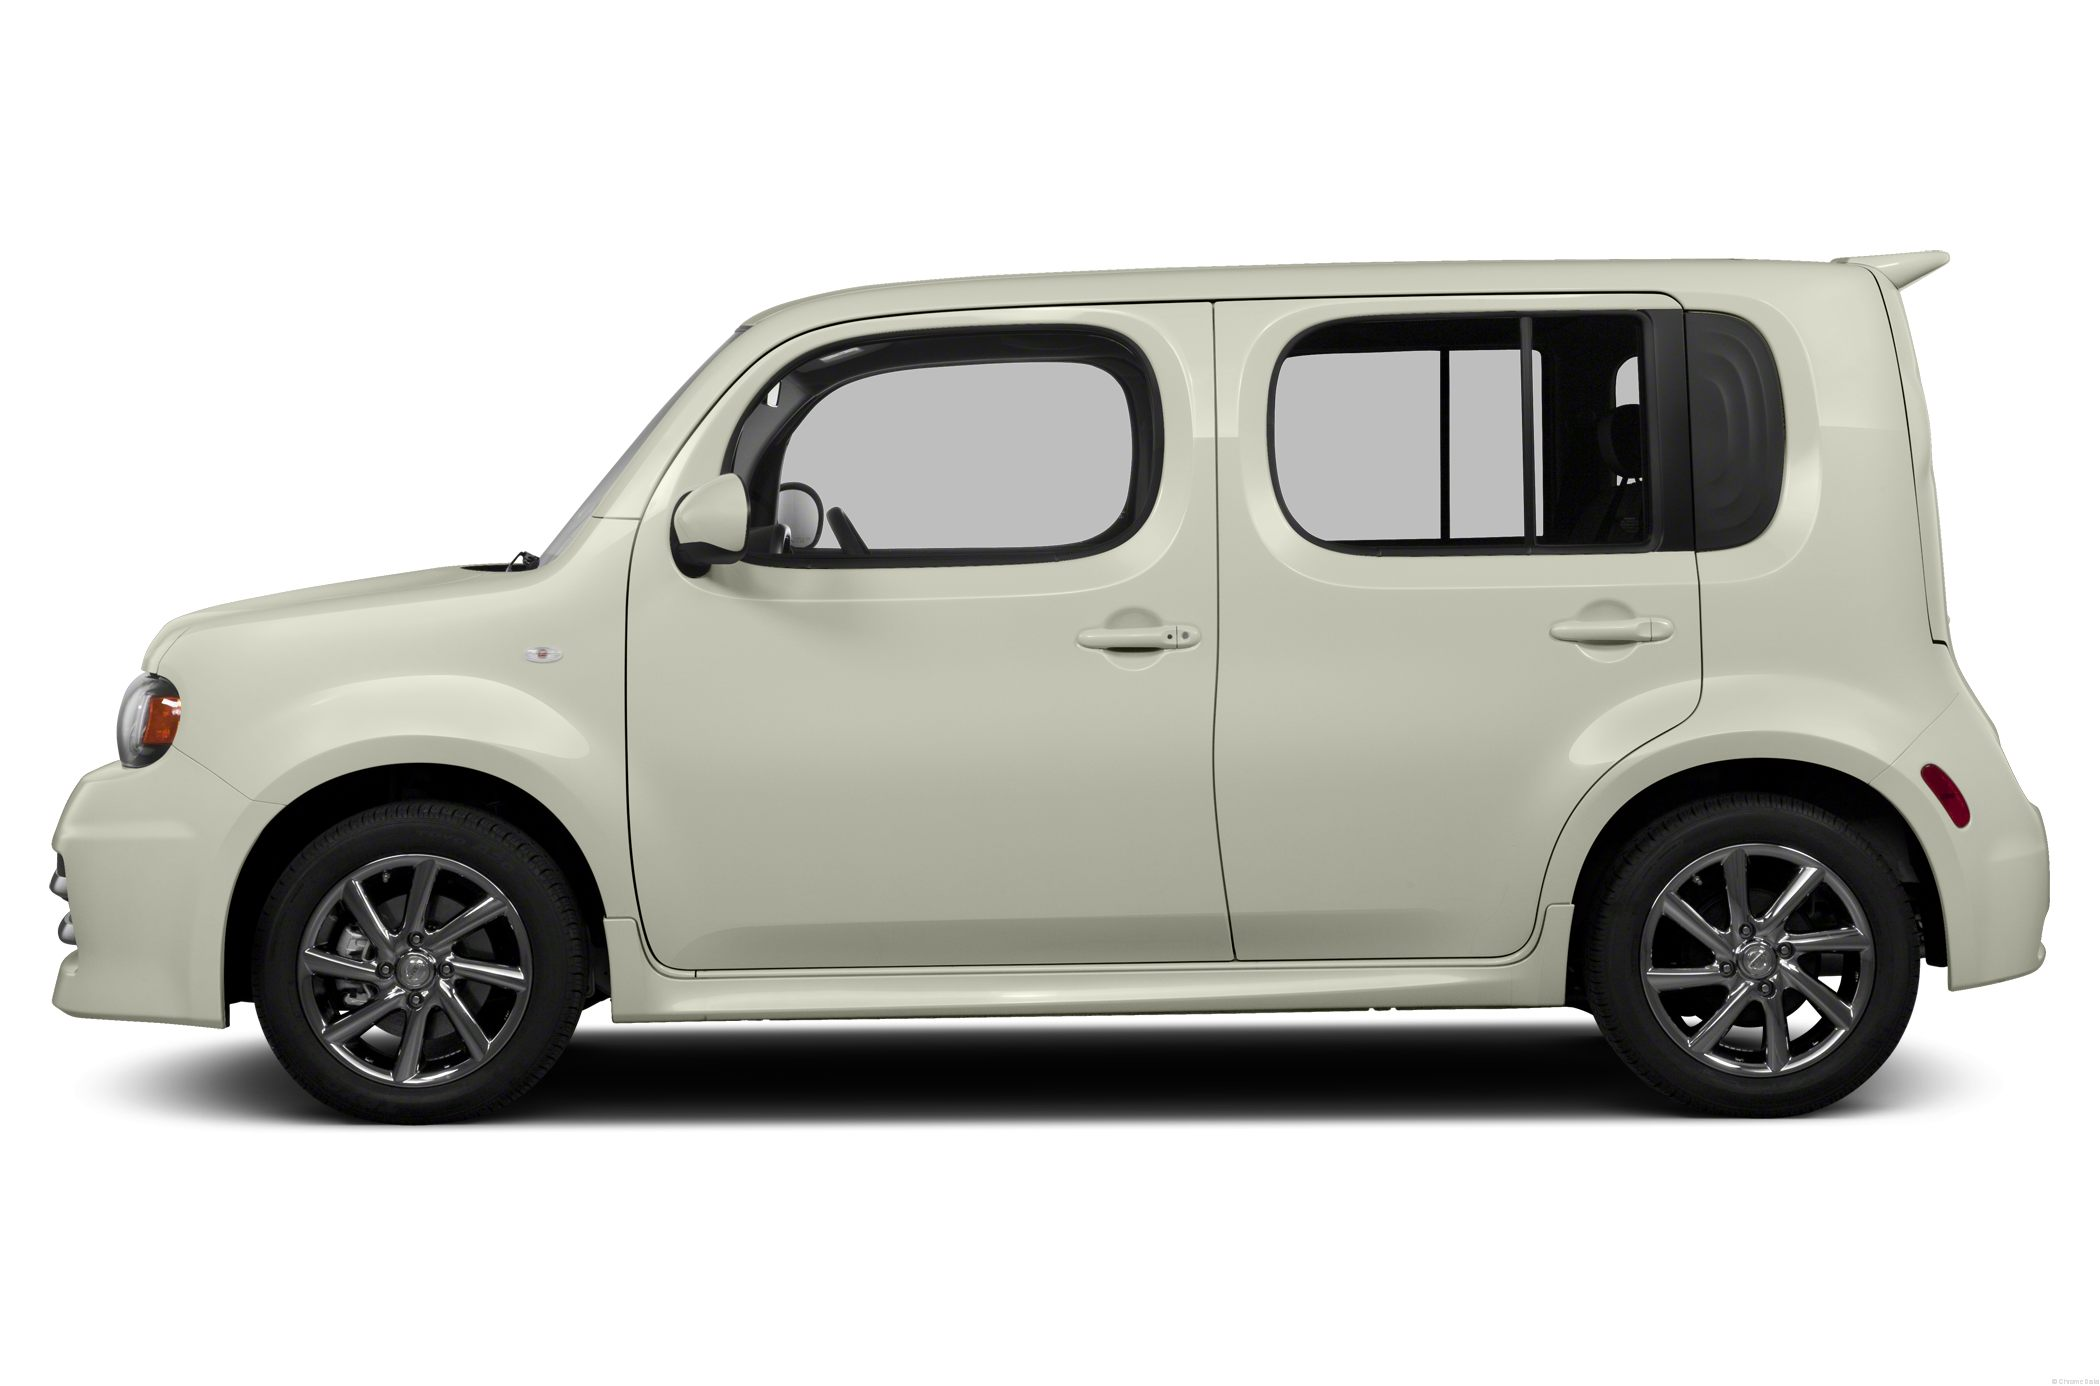 2013 Nissan Cube Information And Photos Zombiedrive Engine Diagram 5